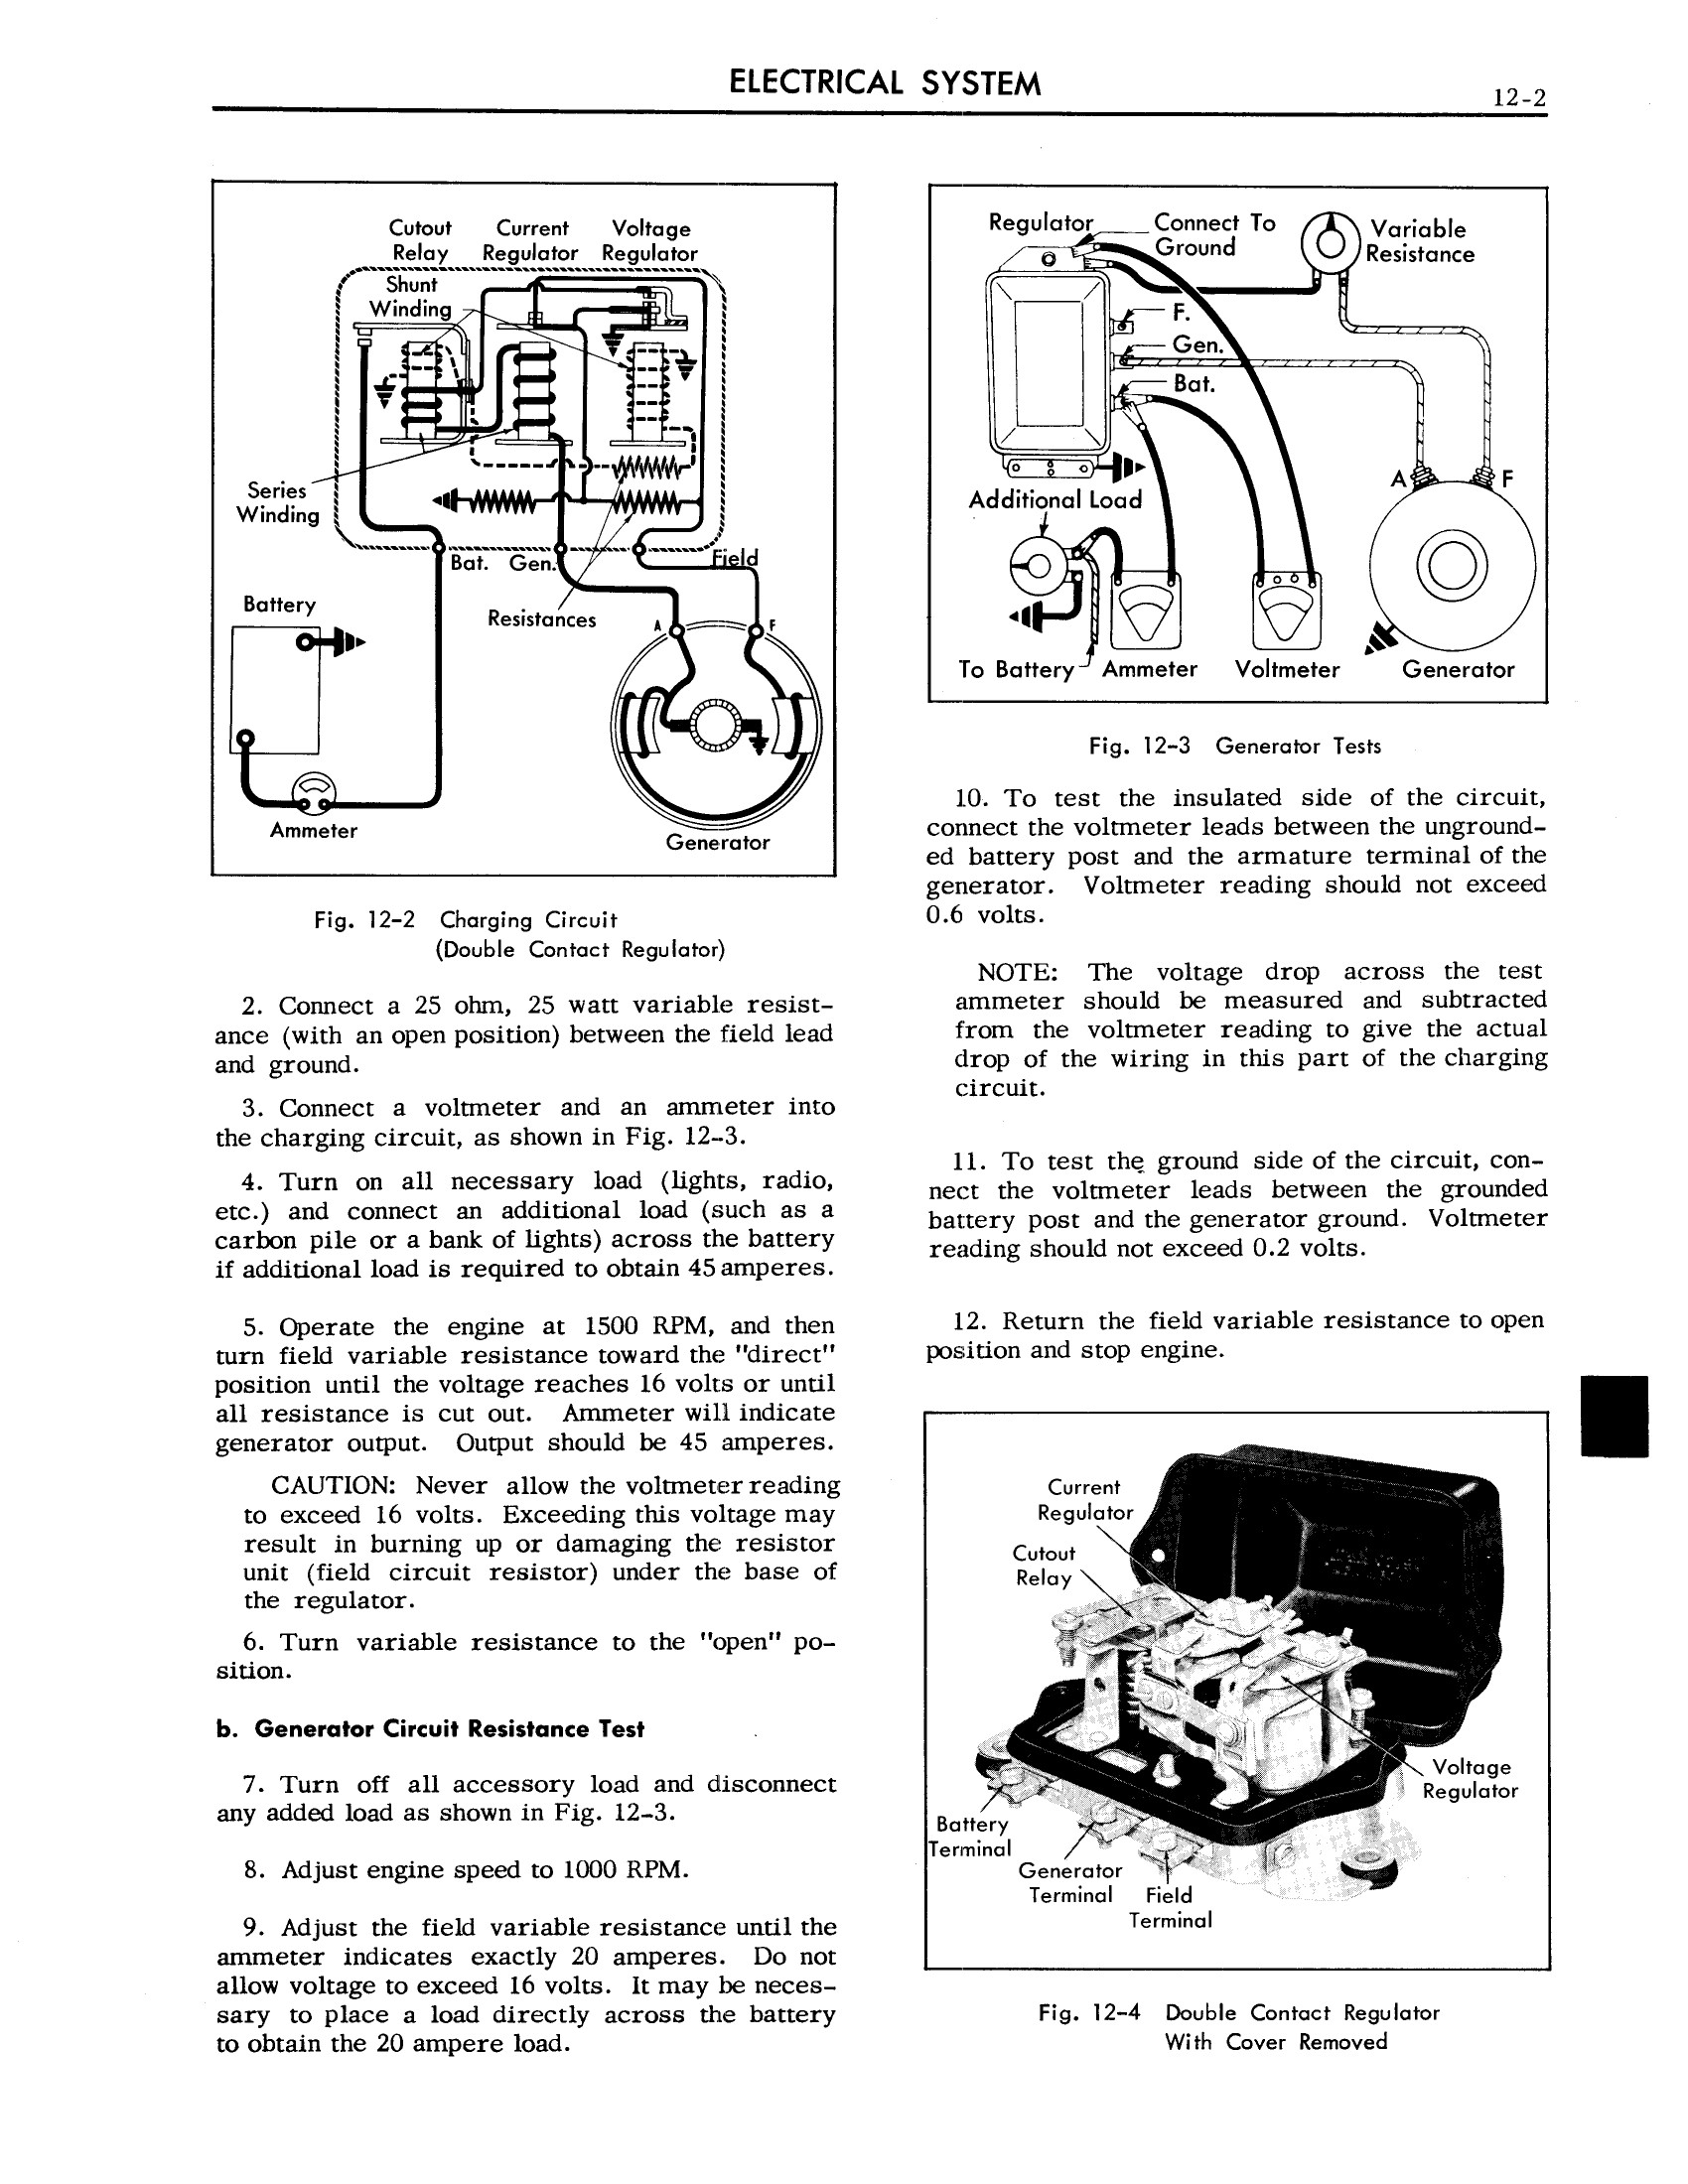 1958 Cadillac Shop Manual- Electrical System Page 2 of 23